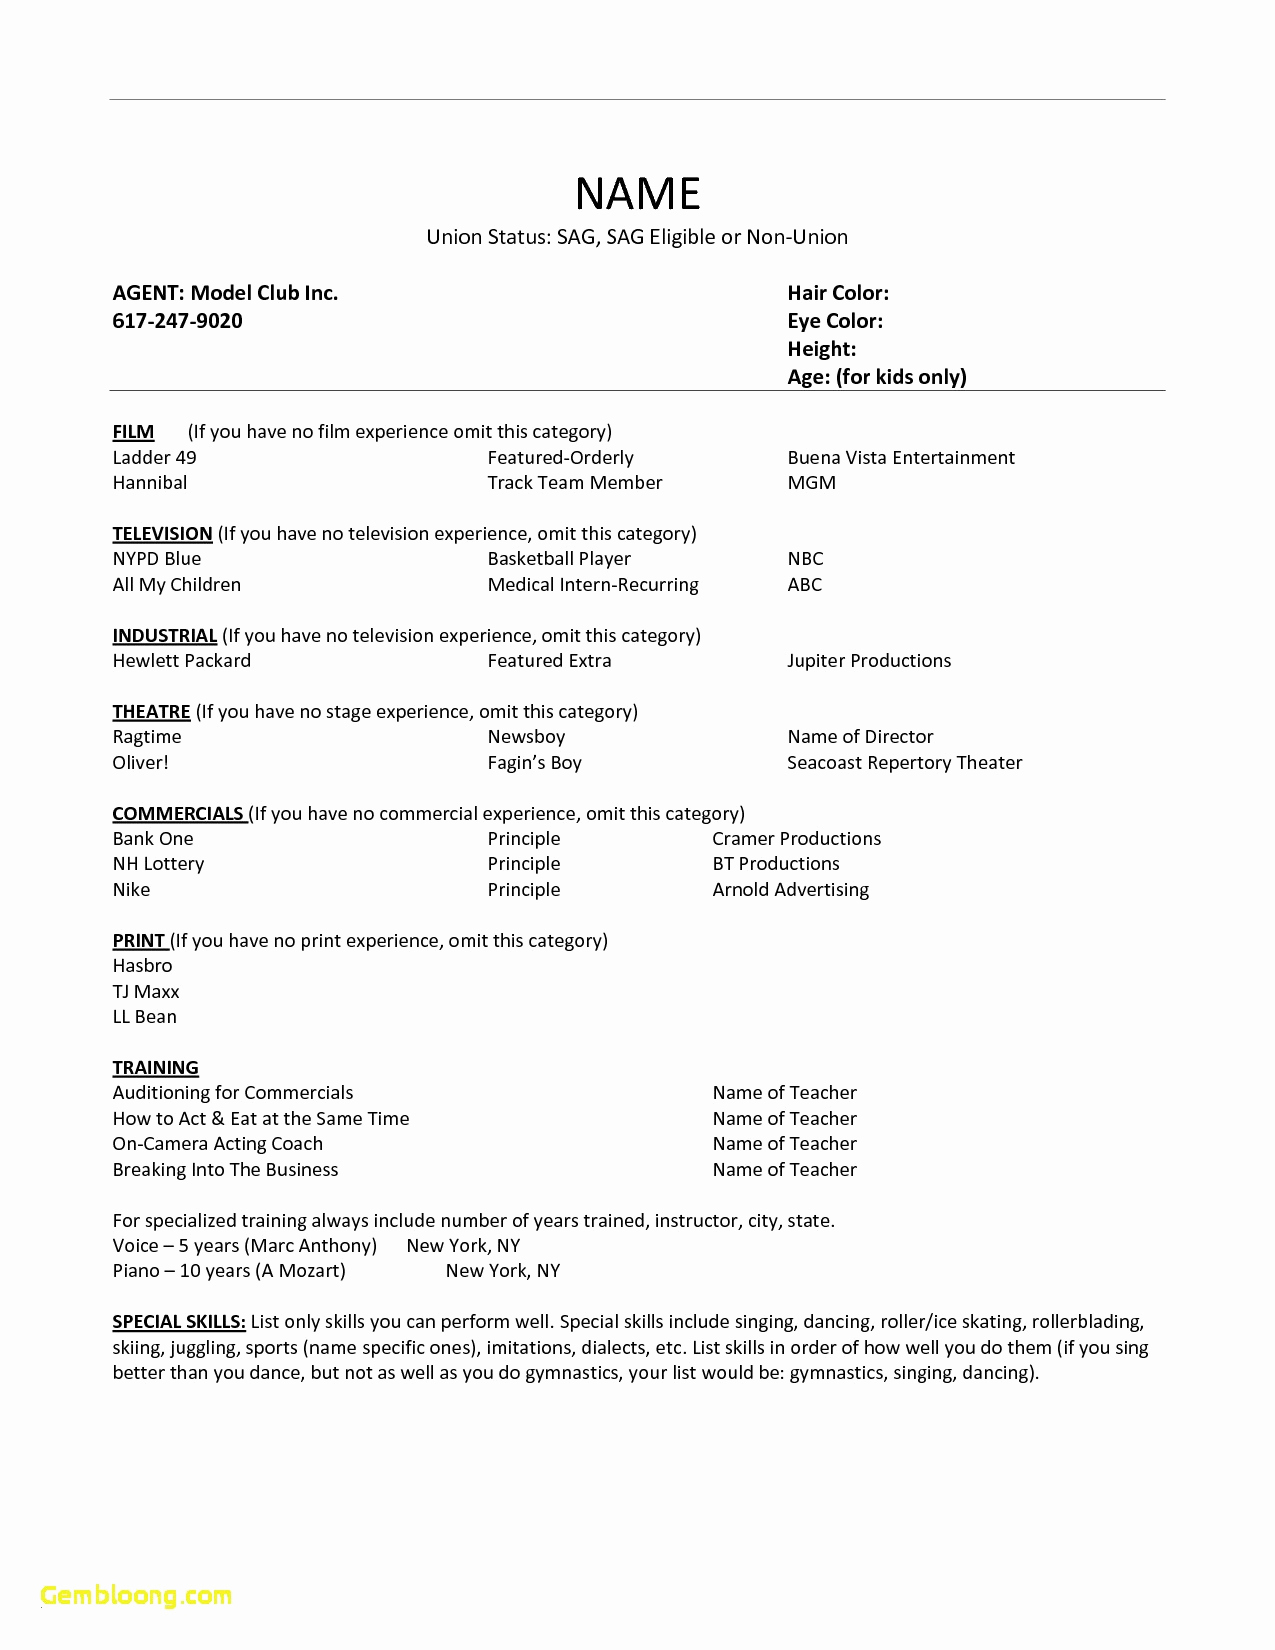 Acting Resume Template No Experience - Modeling Resume No Experience Acting and Modeling Resume Template